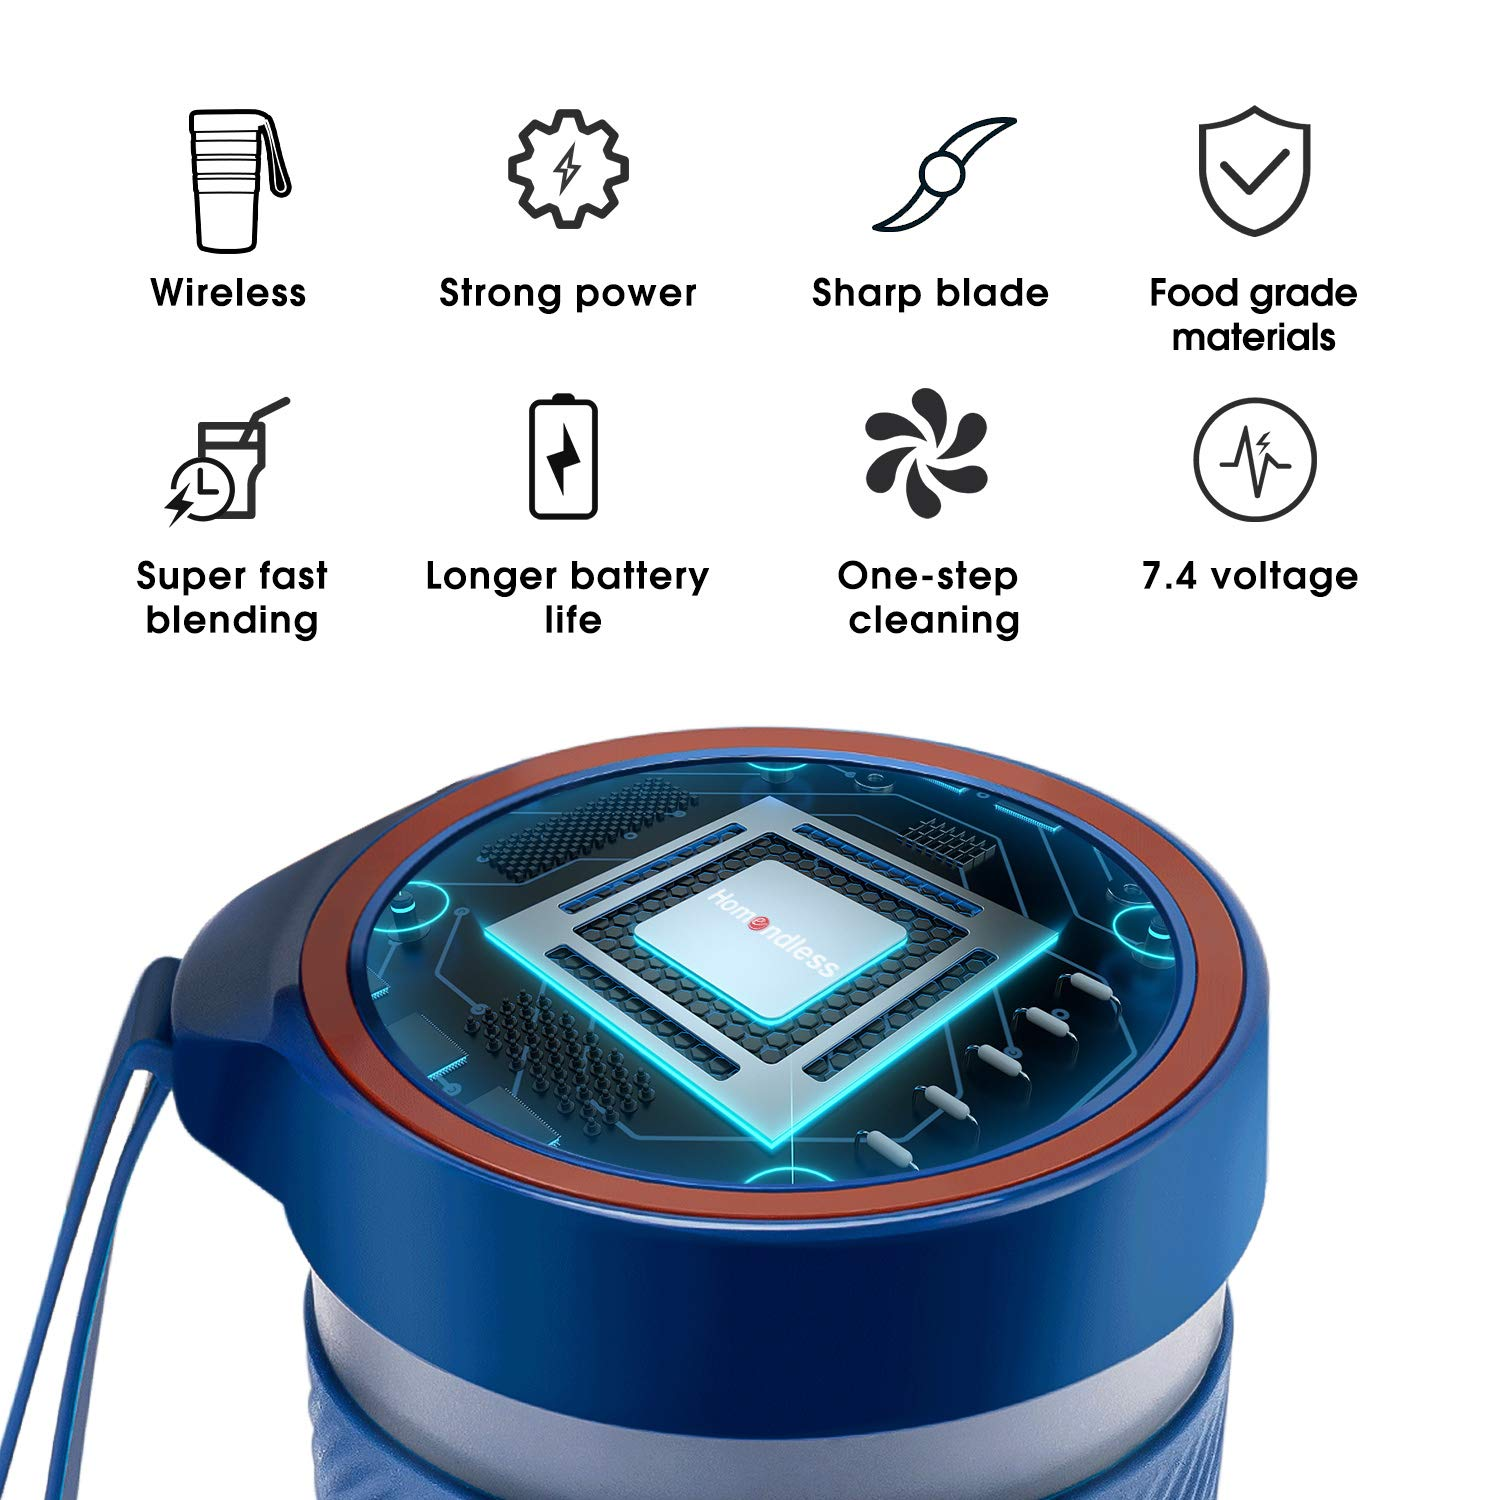 Portable Blender BPA Free IP68 Waterproof 10oz Cordless Personal Blender Fruit Juicer Mixer for Office Gym Outdoors Travel Mini Smoothie Blender with Rechargeable Battery 7.4V Strong Power